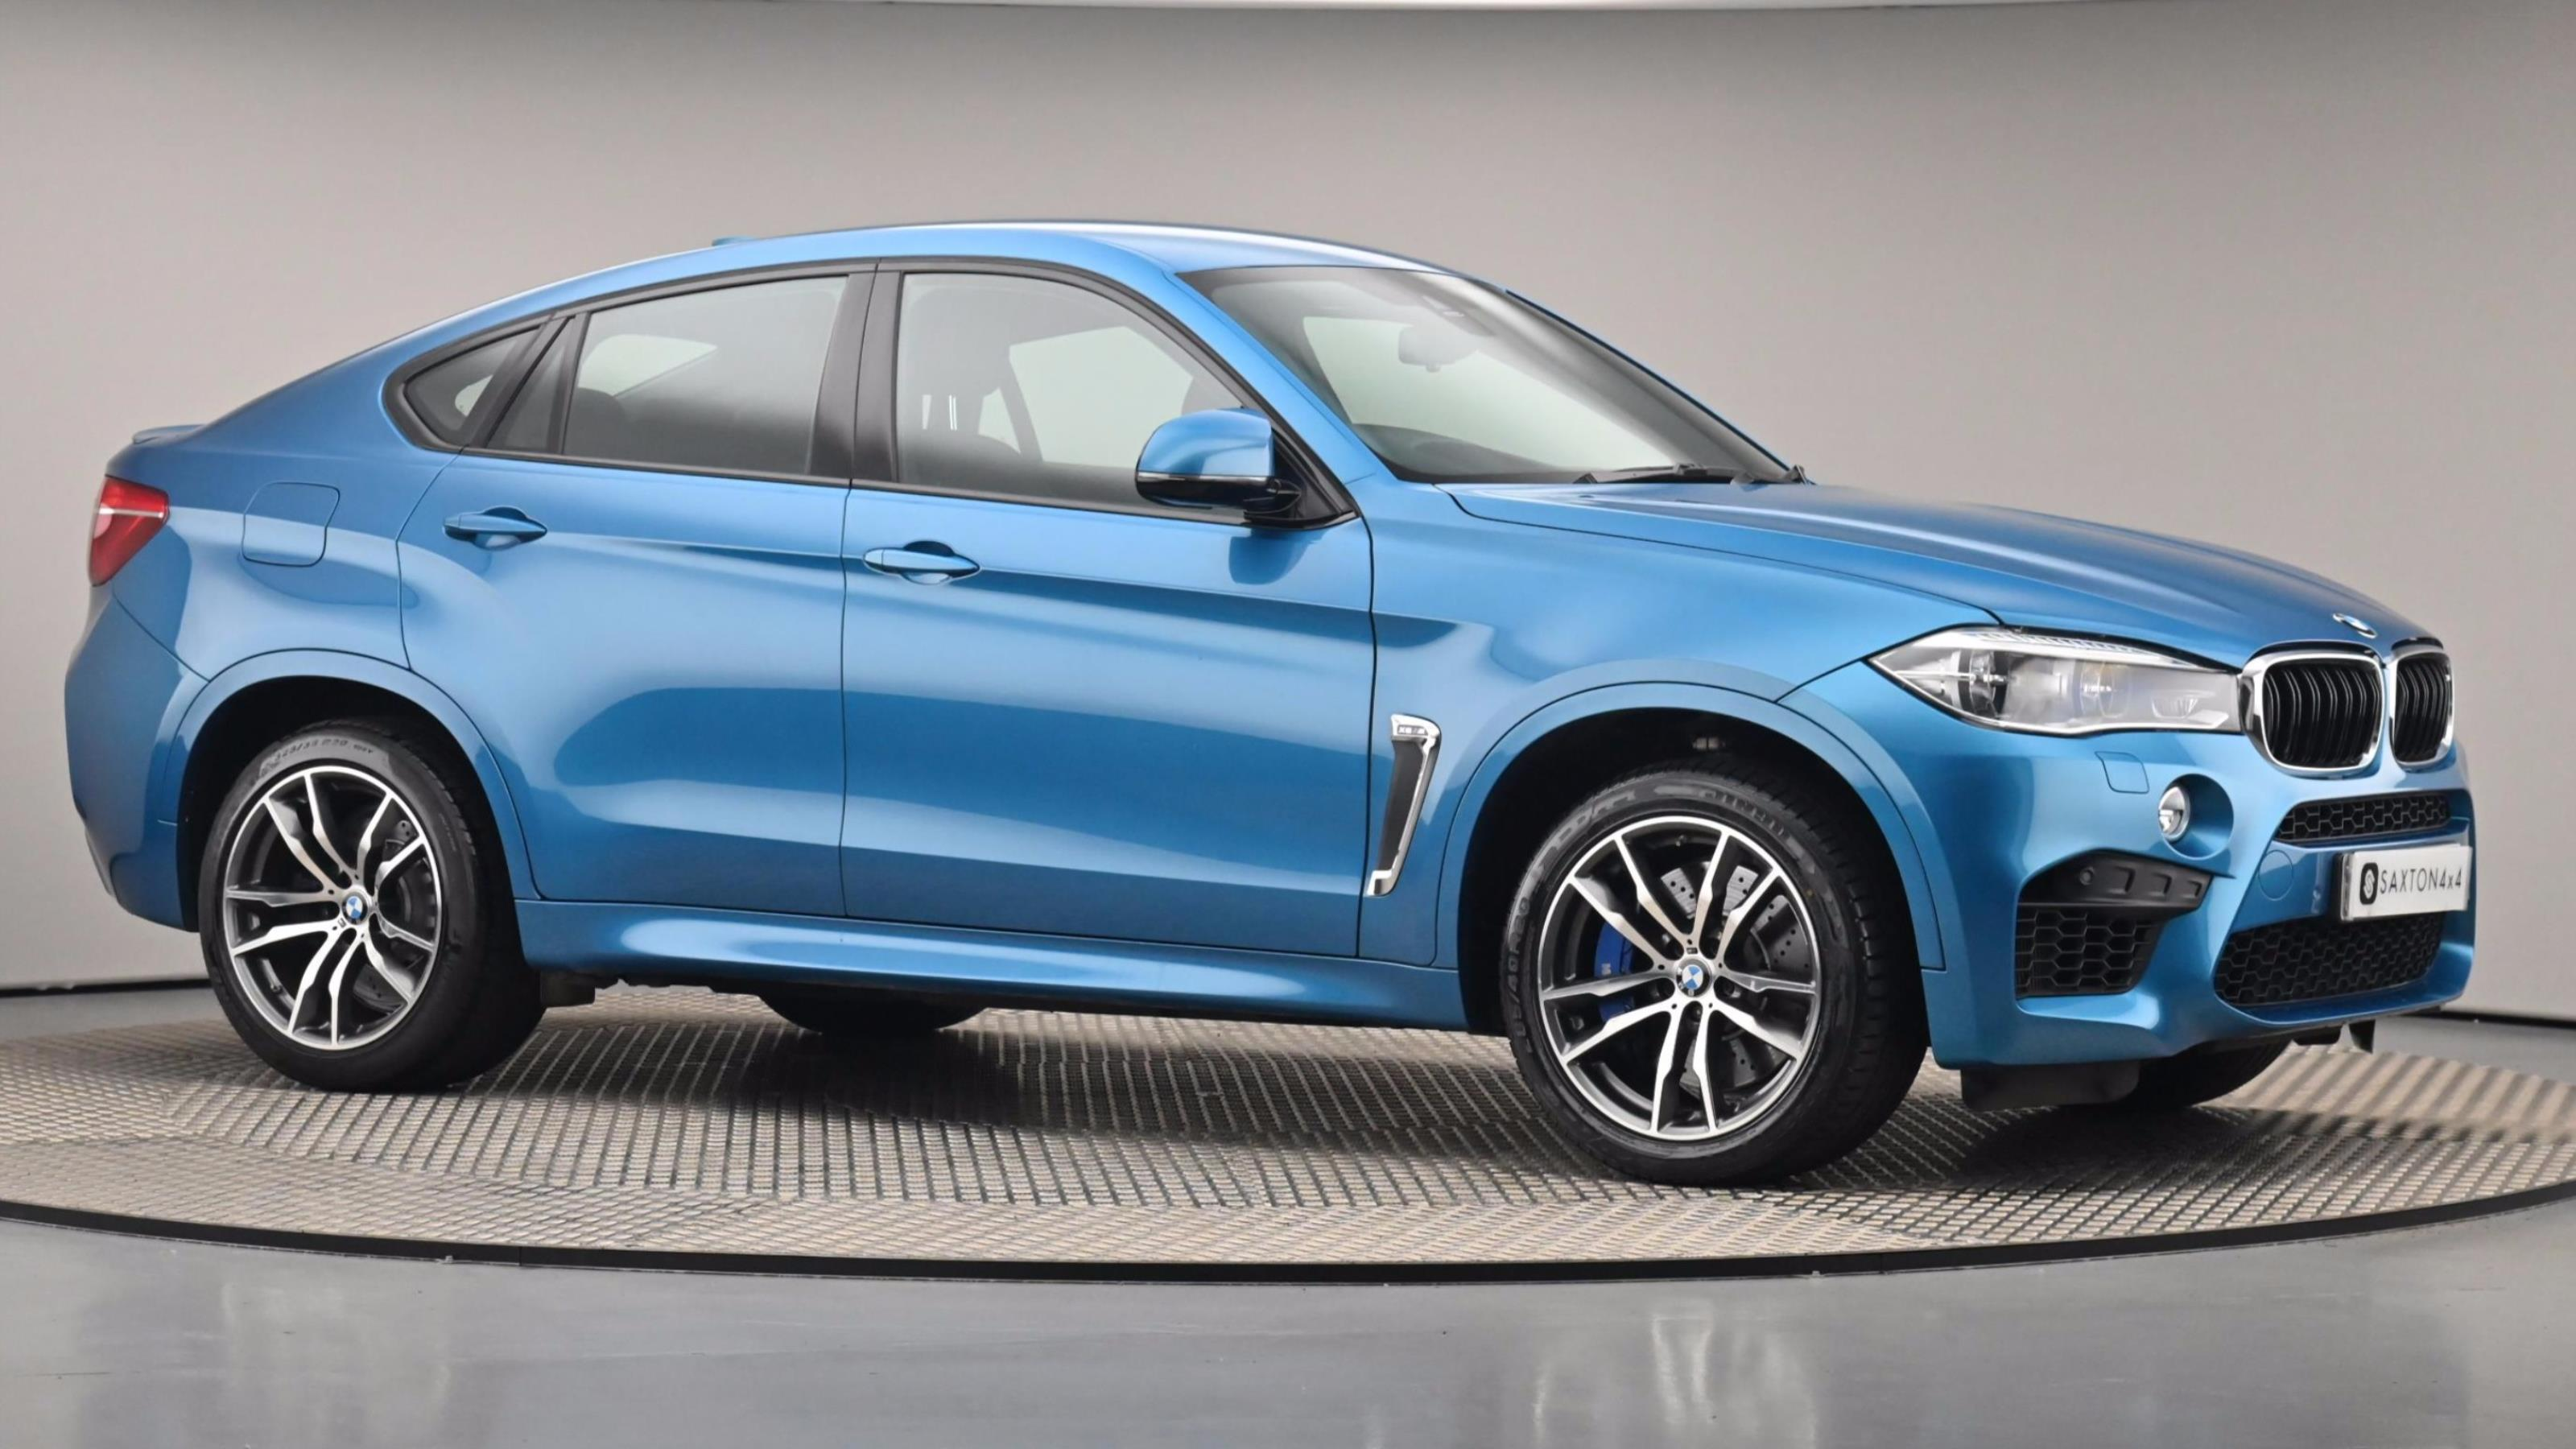 Used 2016 BMW X6 M xDrive X6 M 5dr Auto BLUE at Saxton4x4